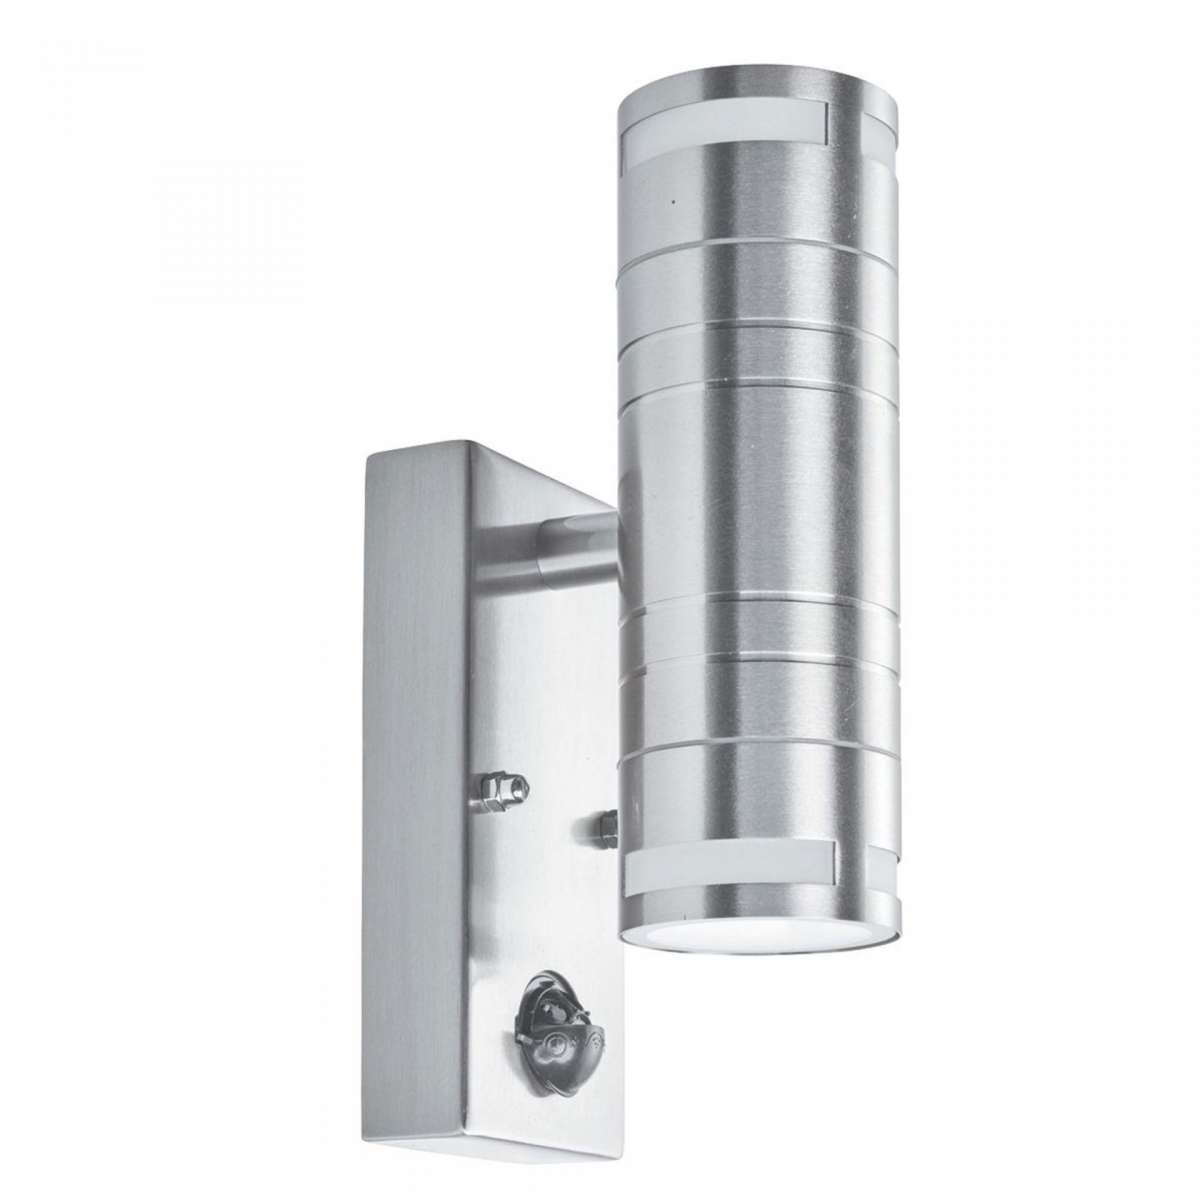 6W LED PIR Stainless Steel 2 Light Wall Bracket Frosted Glass